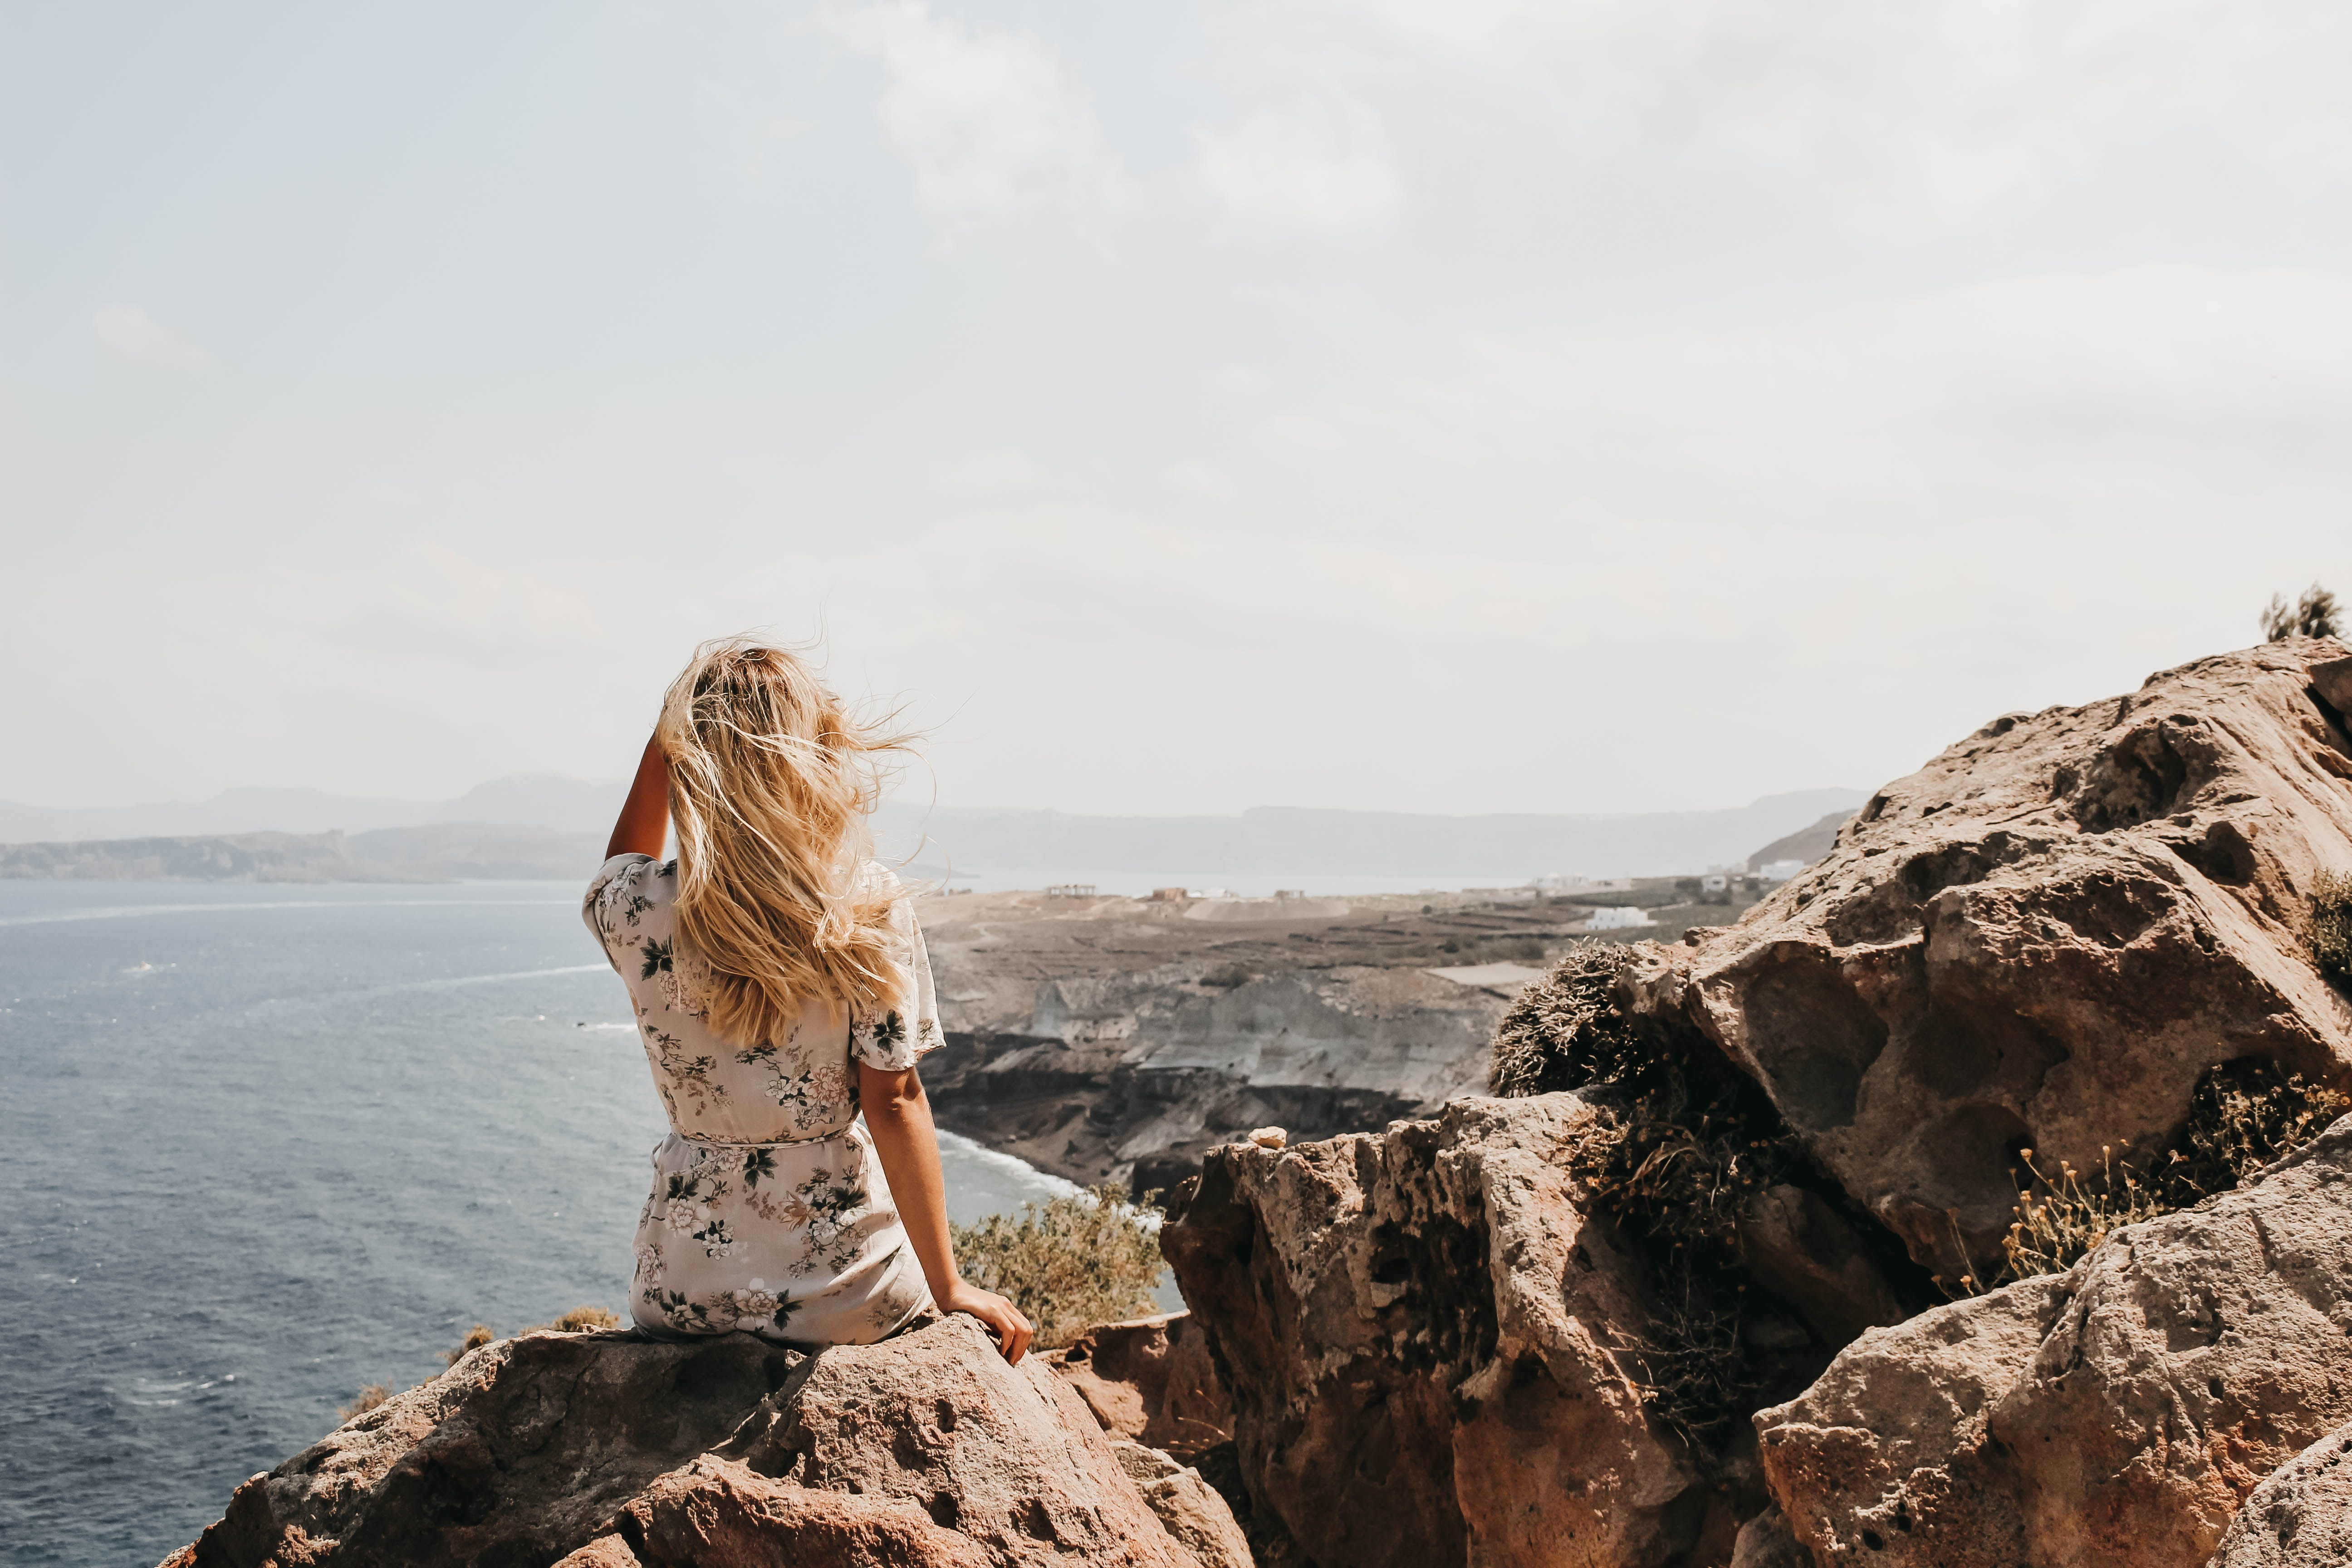 Woman Sitting on a Cliff Watching the Body of Water